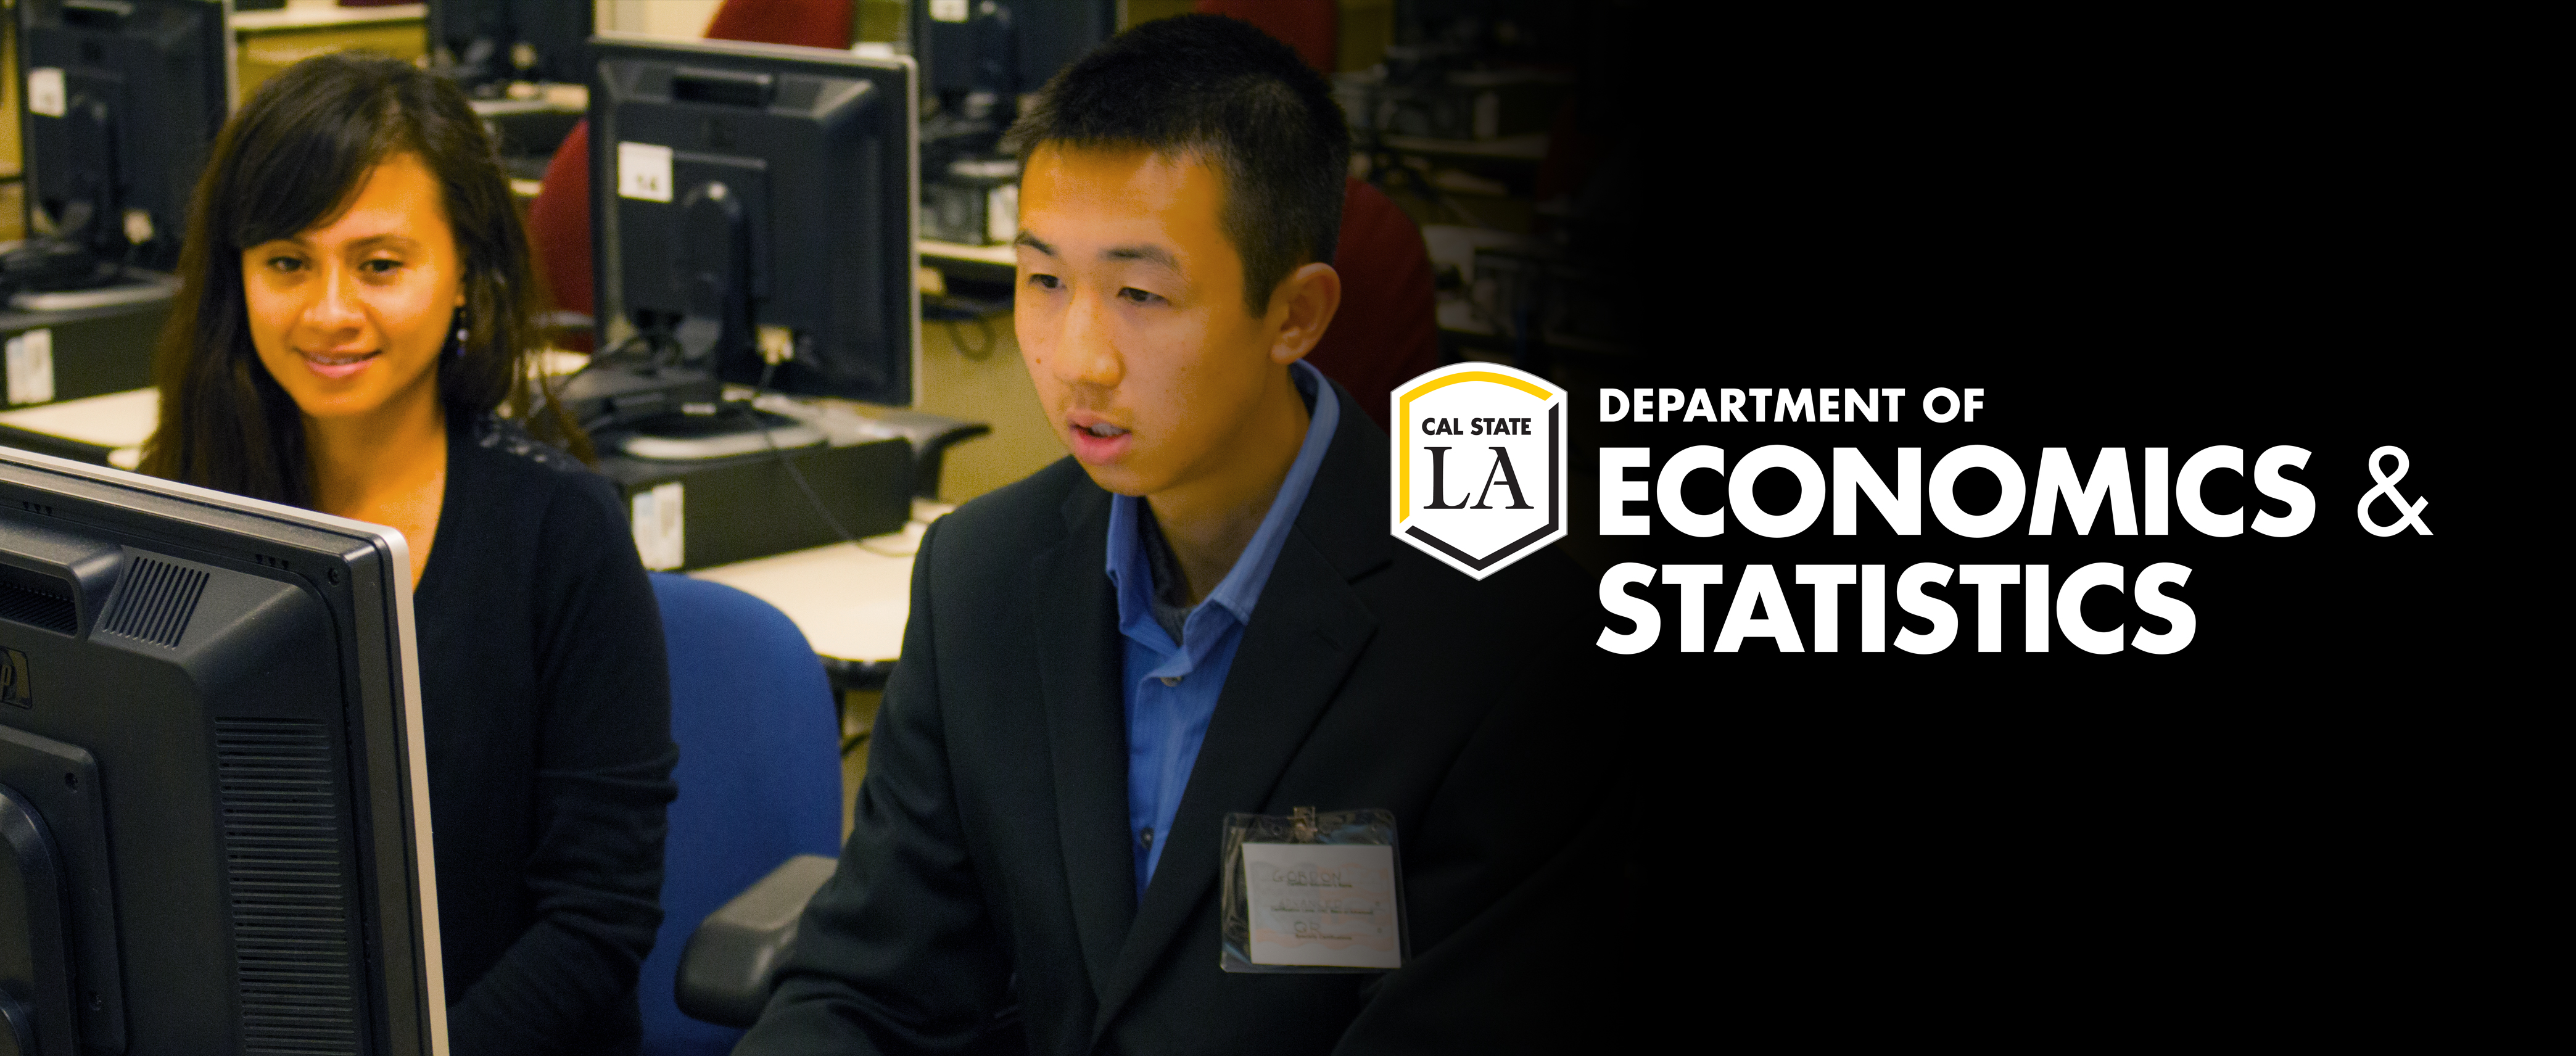 Cal State LA College of Business & Economics | Department of Economics and Statistics